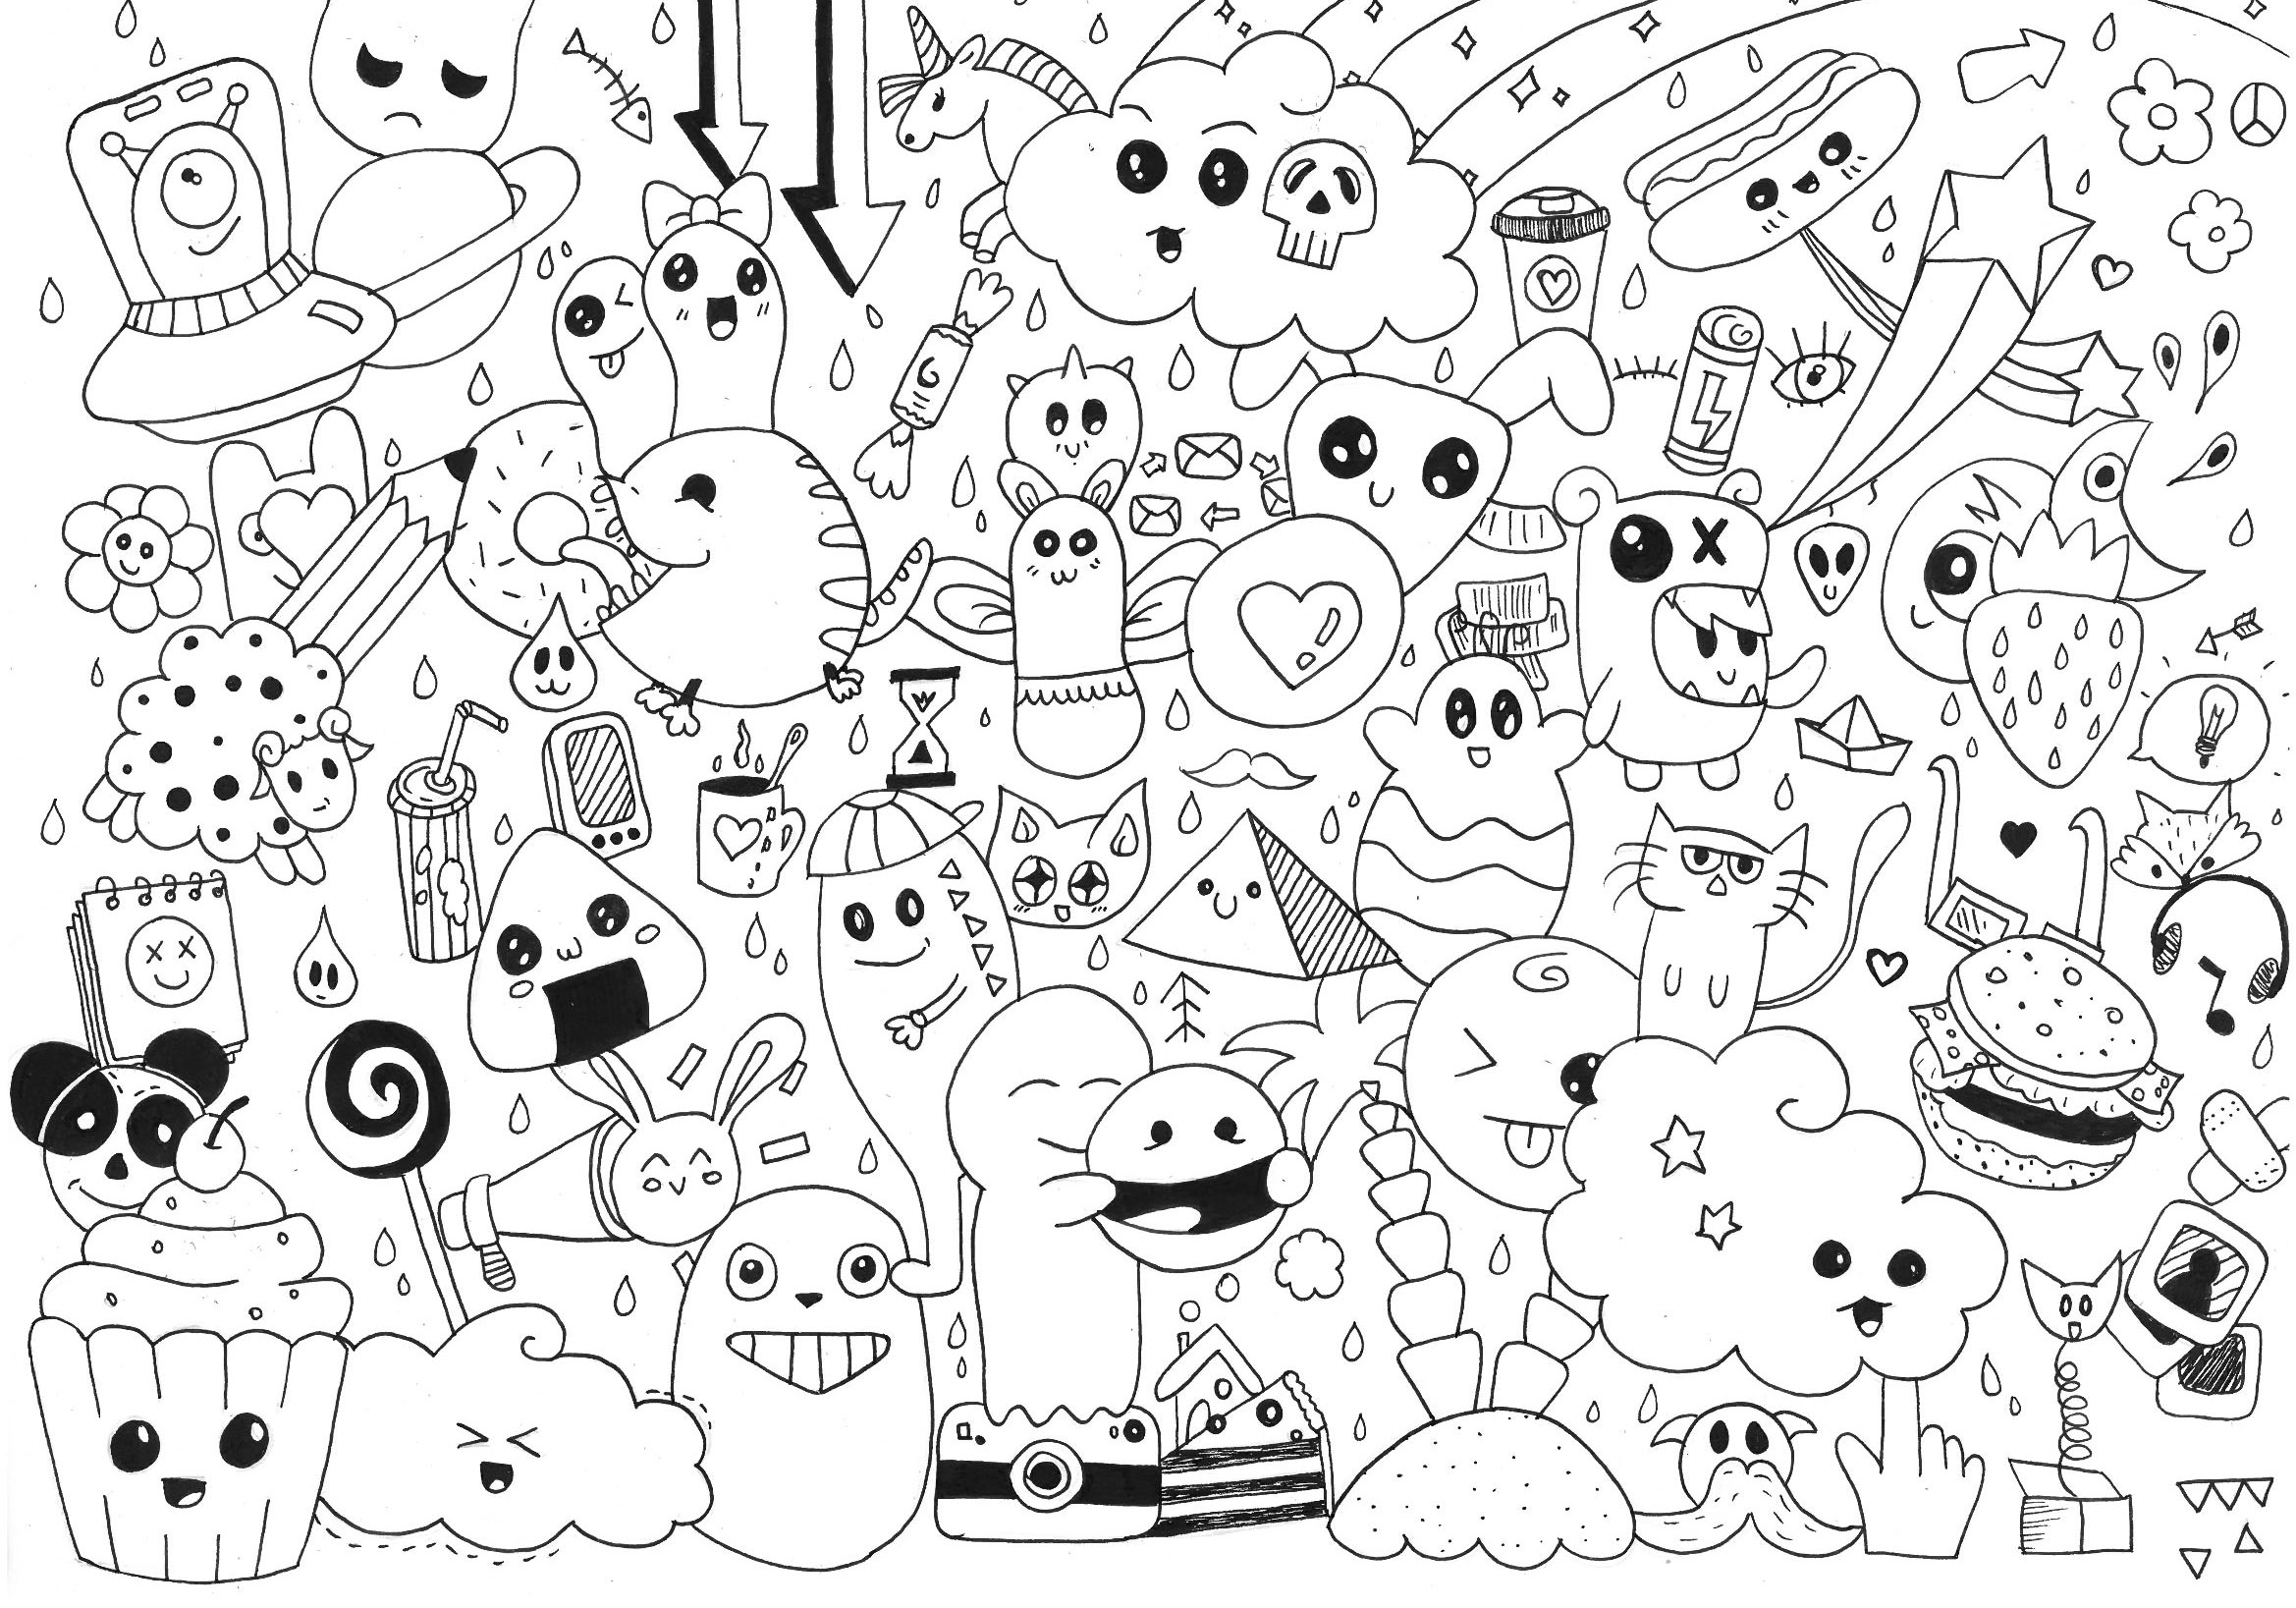 free doodle art to print and color doodle art to print doodle art kids coloring pages doodle to print and color art free